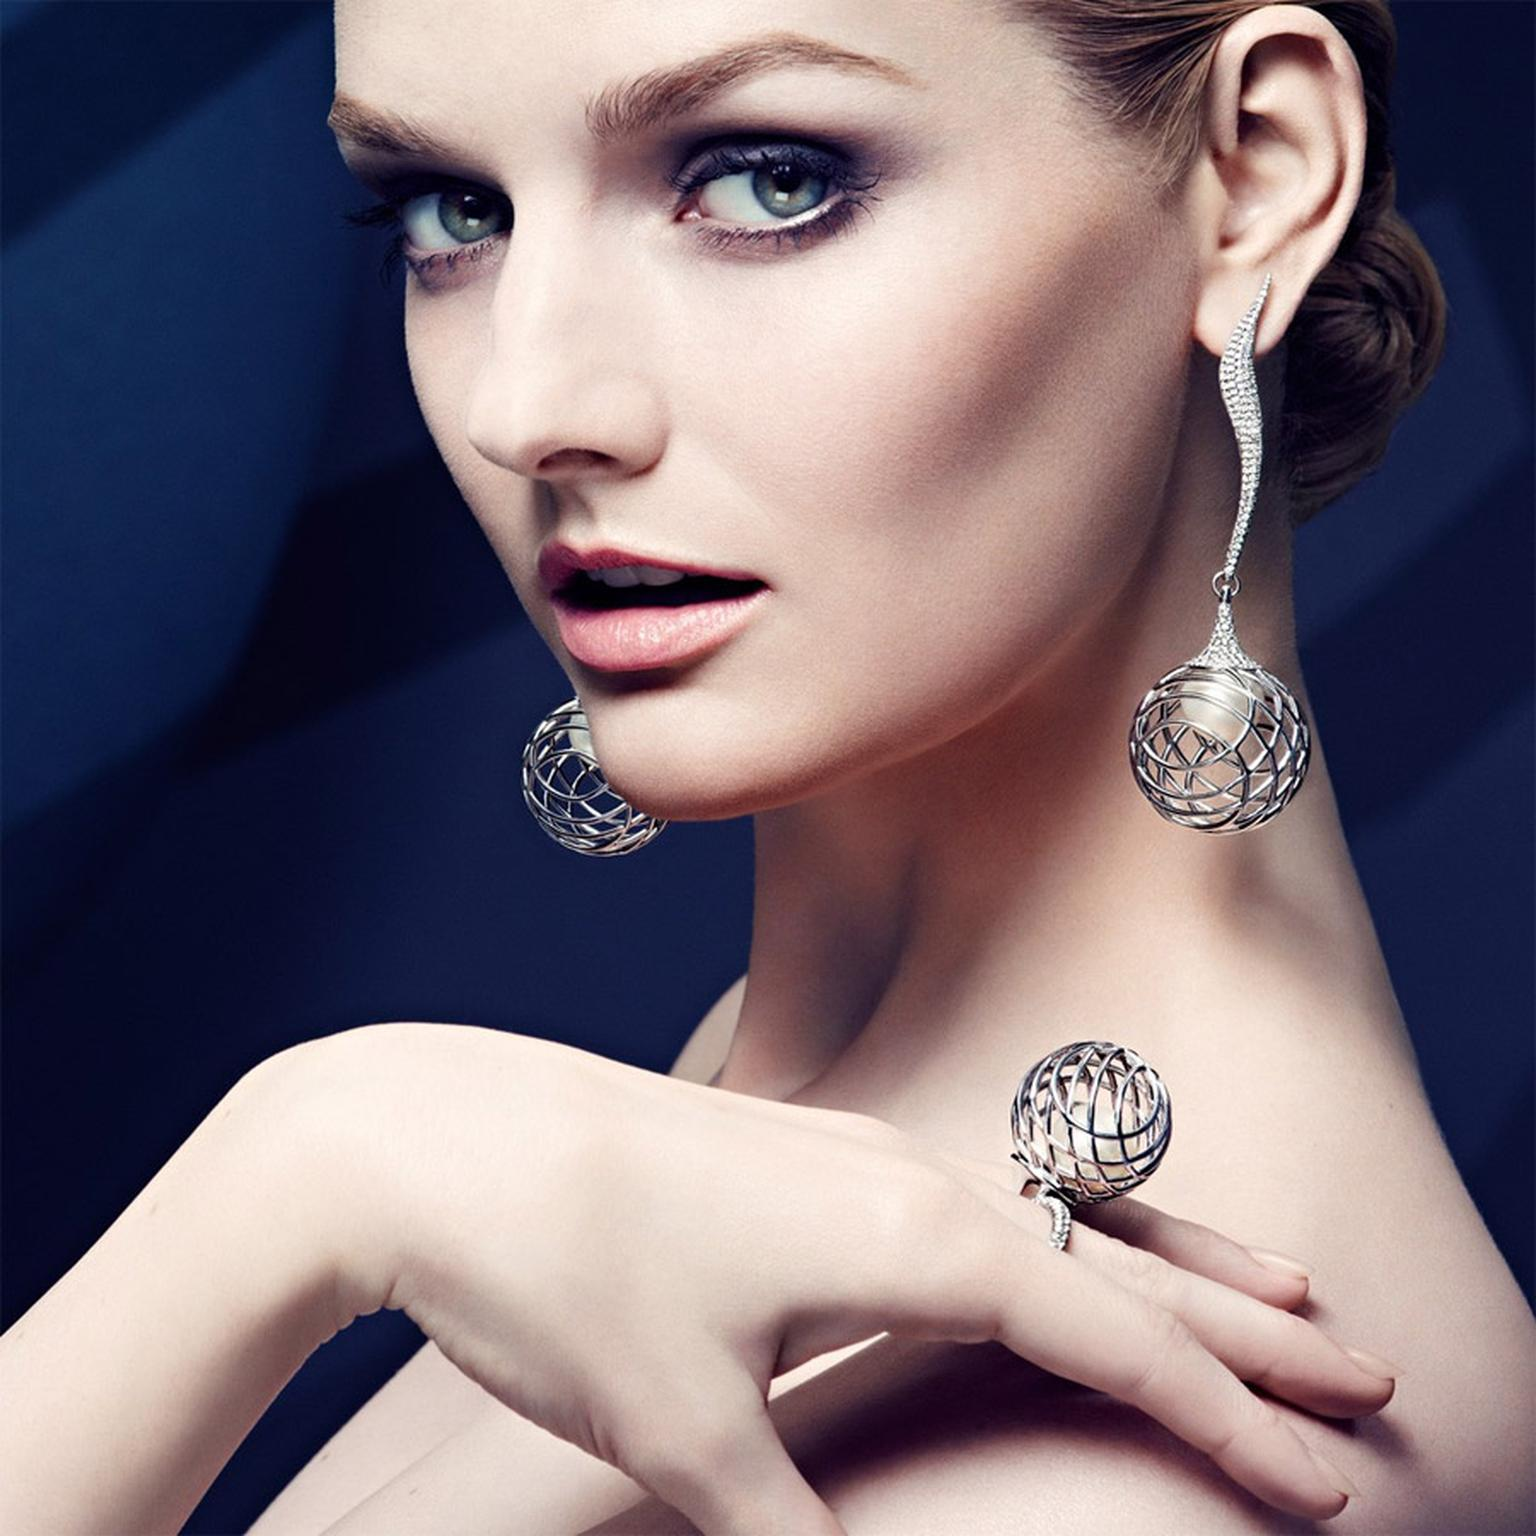 The-Palladium-Fine-Jewellery-Lara-Bohinc-Model-3